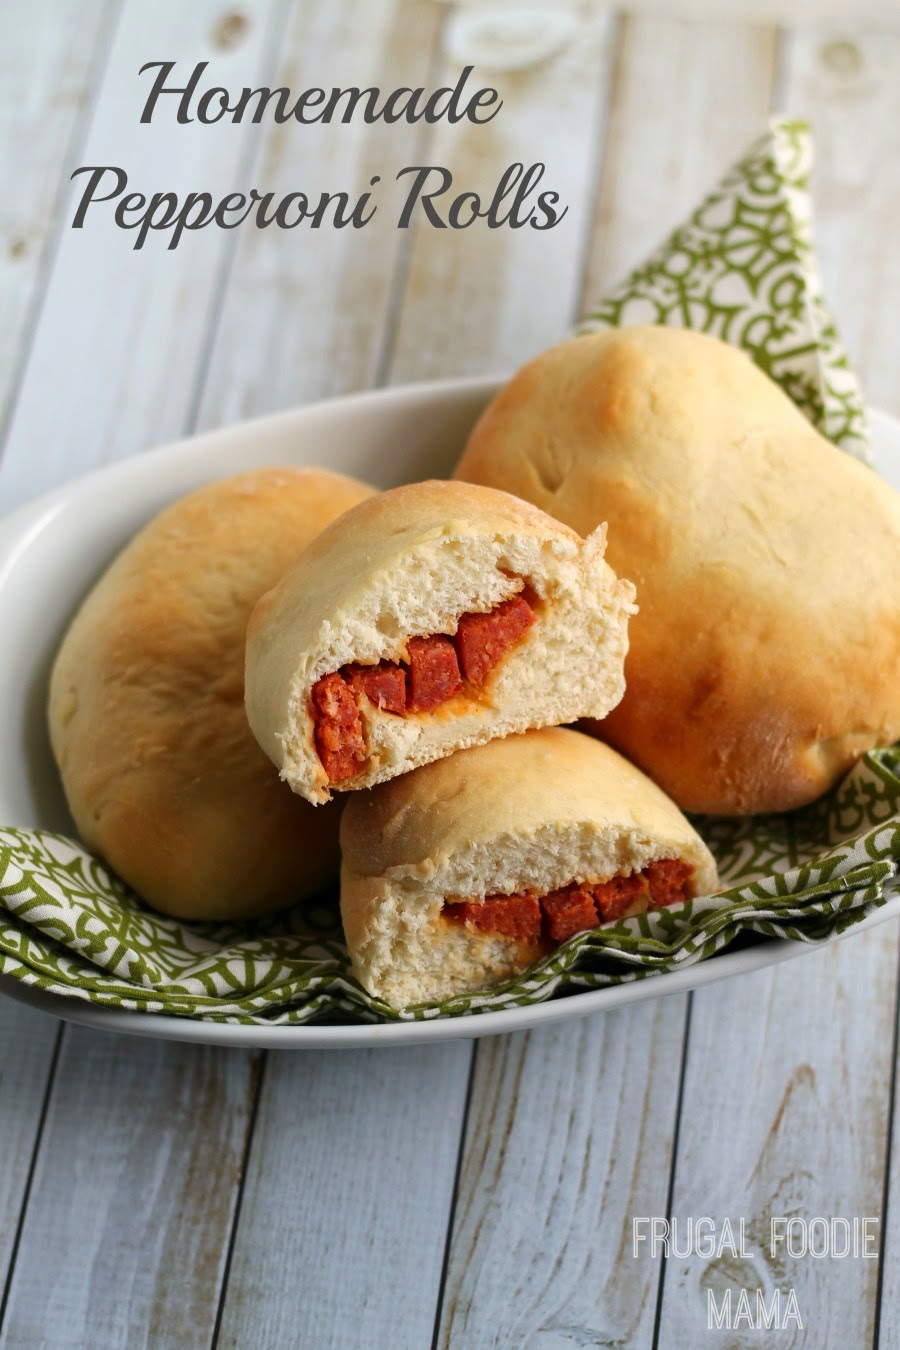 Homemade Pepperoni Rolls- spicy pepperoni enveloped in a soft yeast roll #DoUsAFlavor #CleverGirls